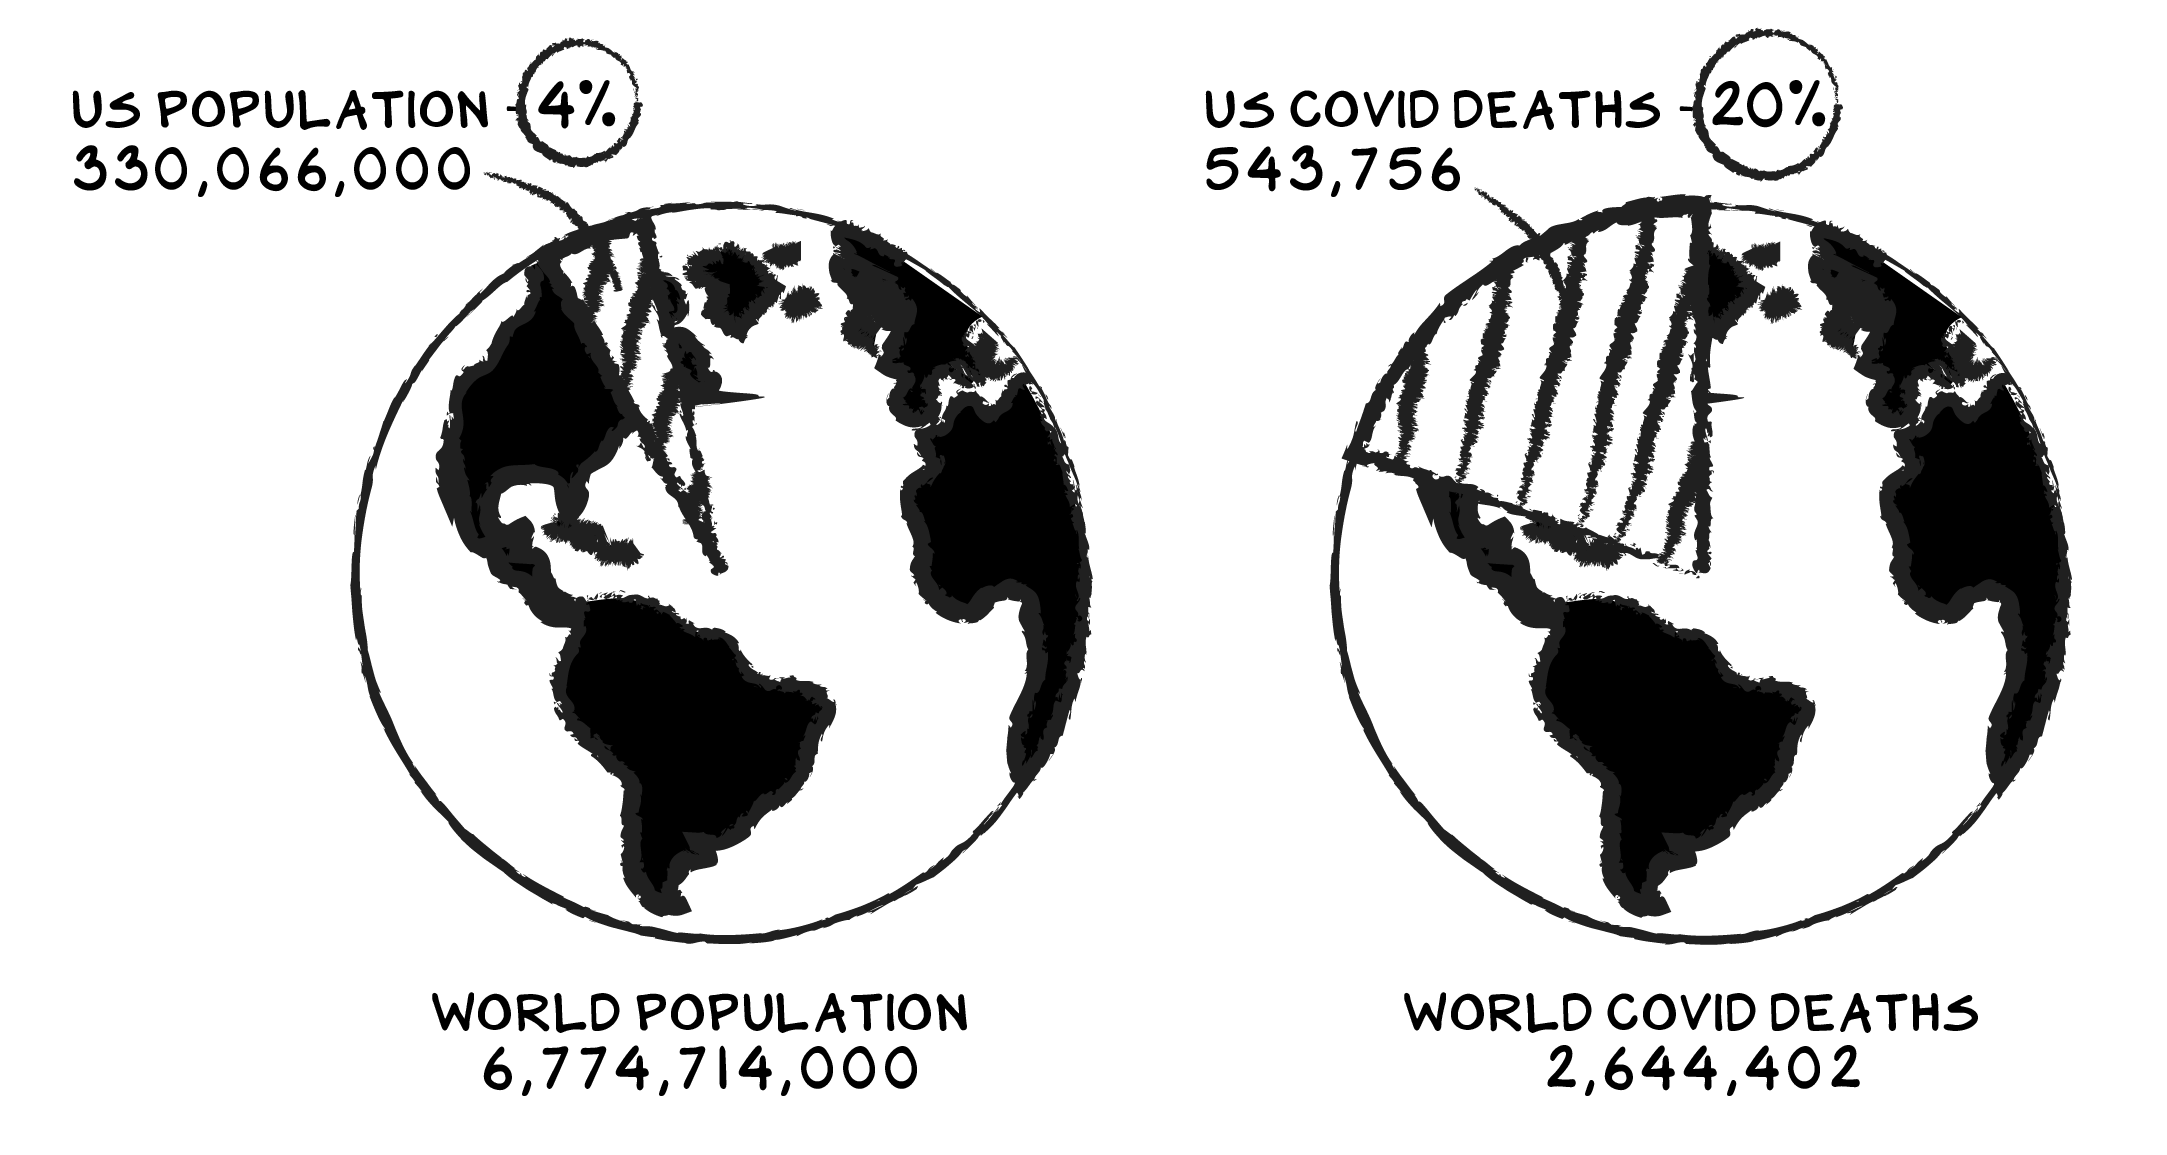 2 pie charts, each illustrated in the style of the globe. The pie chart on the left illustrates the World Population at 6,774,714,000, with the U.S. Population at 4% of the total at 330,066,000. The pie chart on the right illustrates the World Covid Deaths at 2,644,402, with the U.S. Covid Deaths at 20% of the total at 543,756.